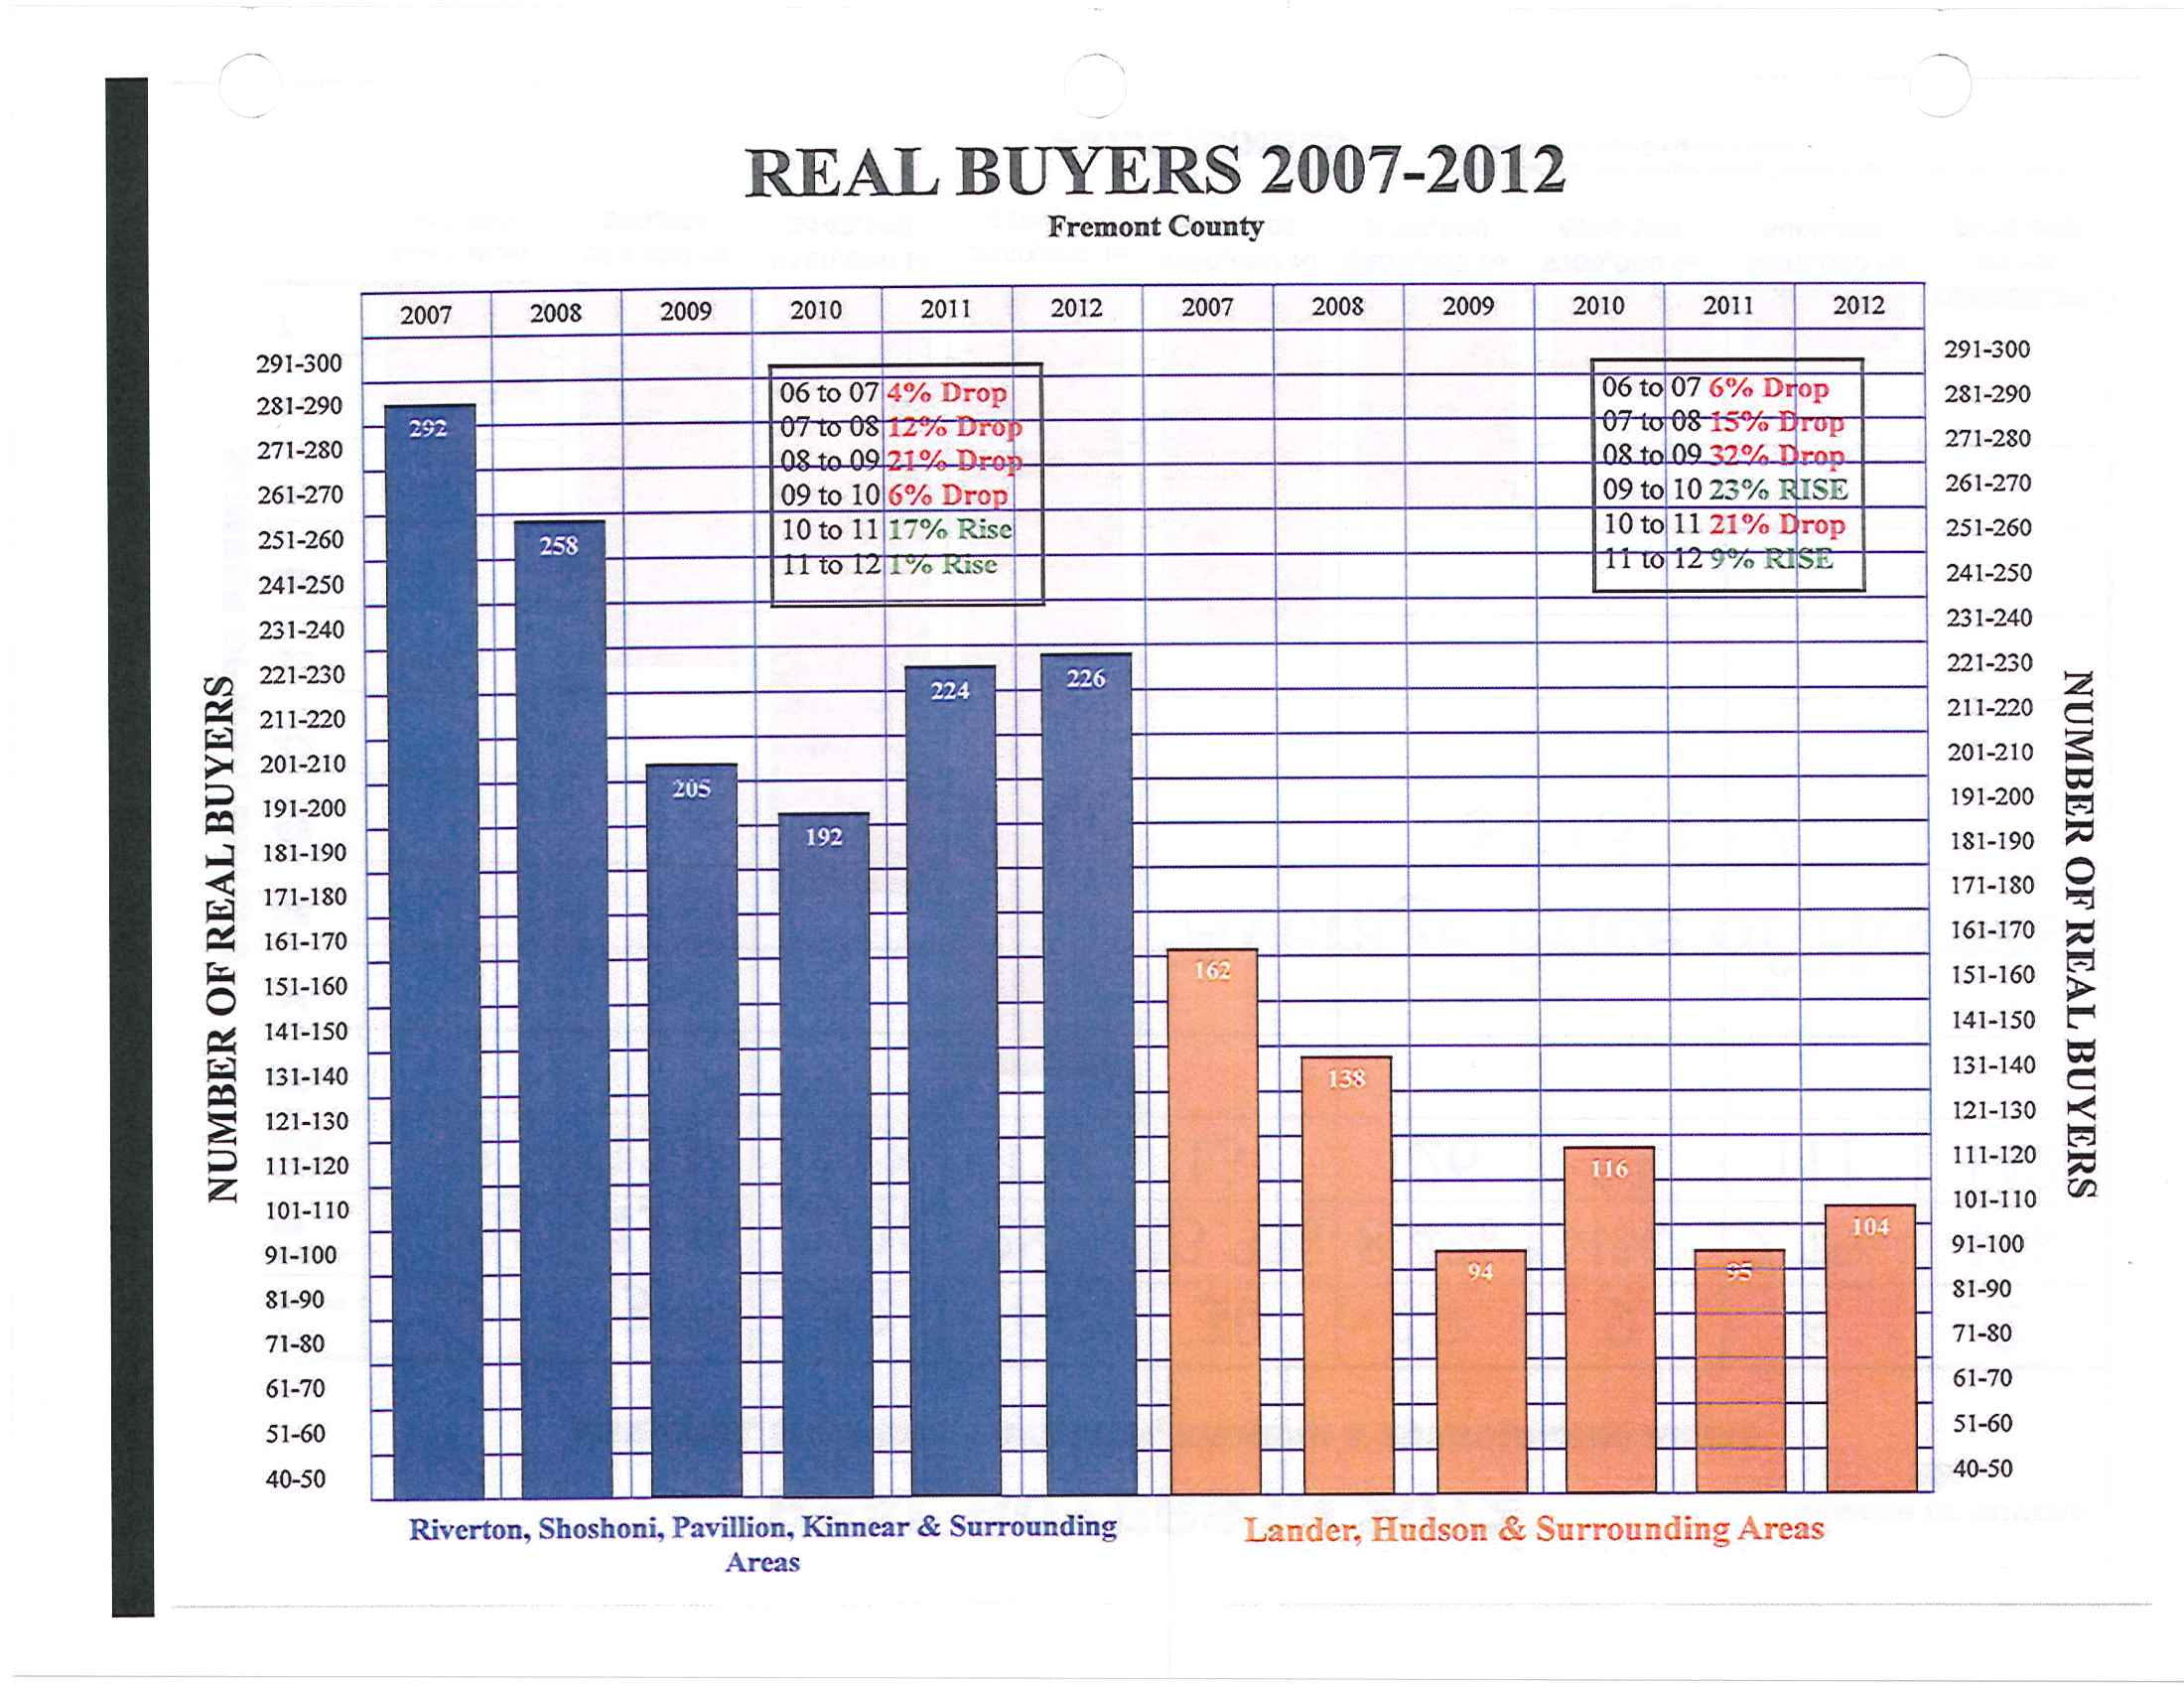 Number of Buyer 2012.jpg